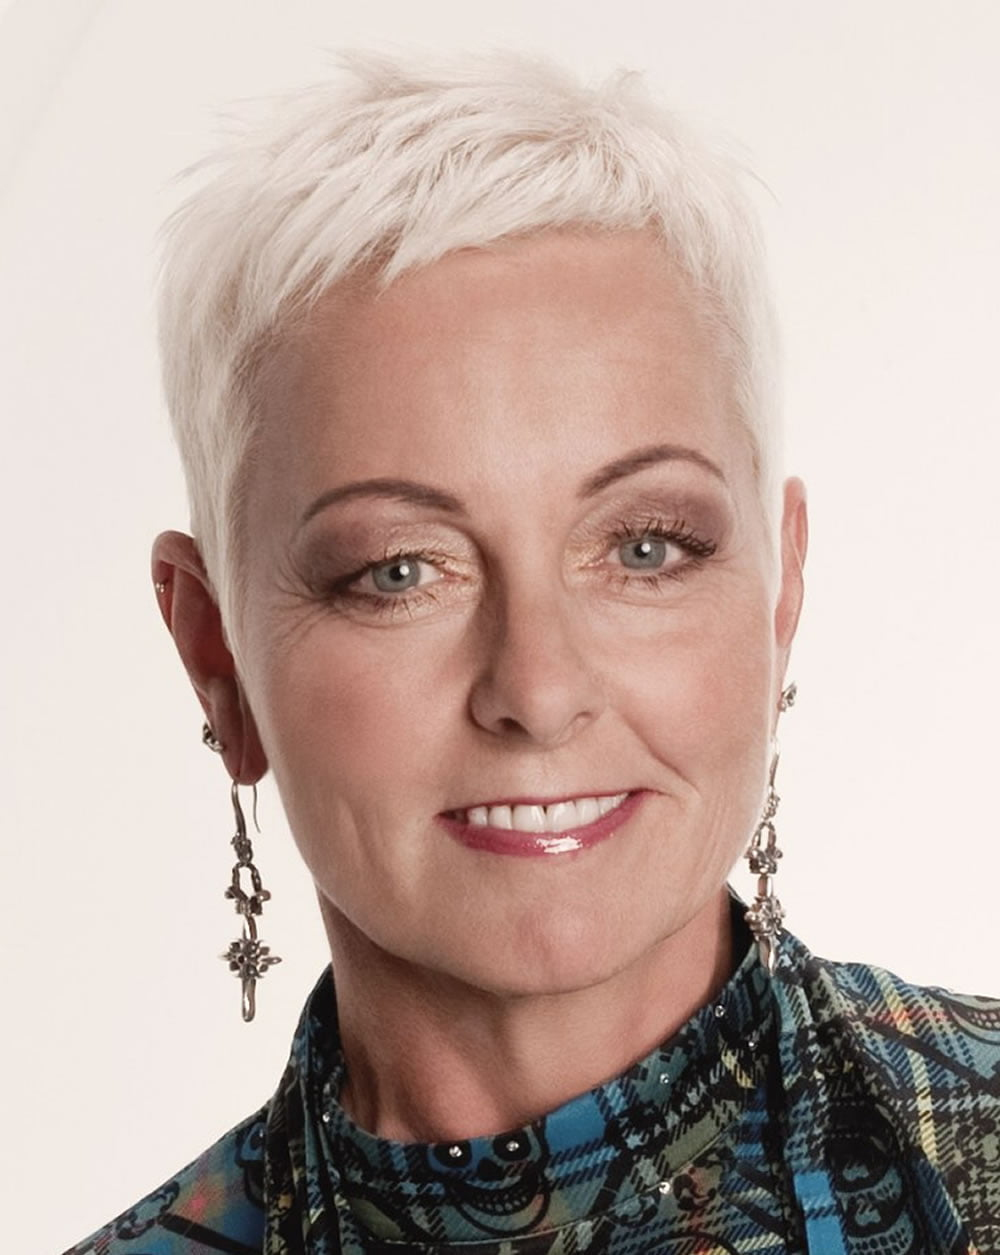 photo of mature woman short hair